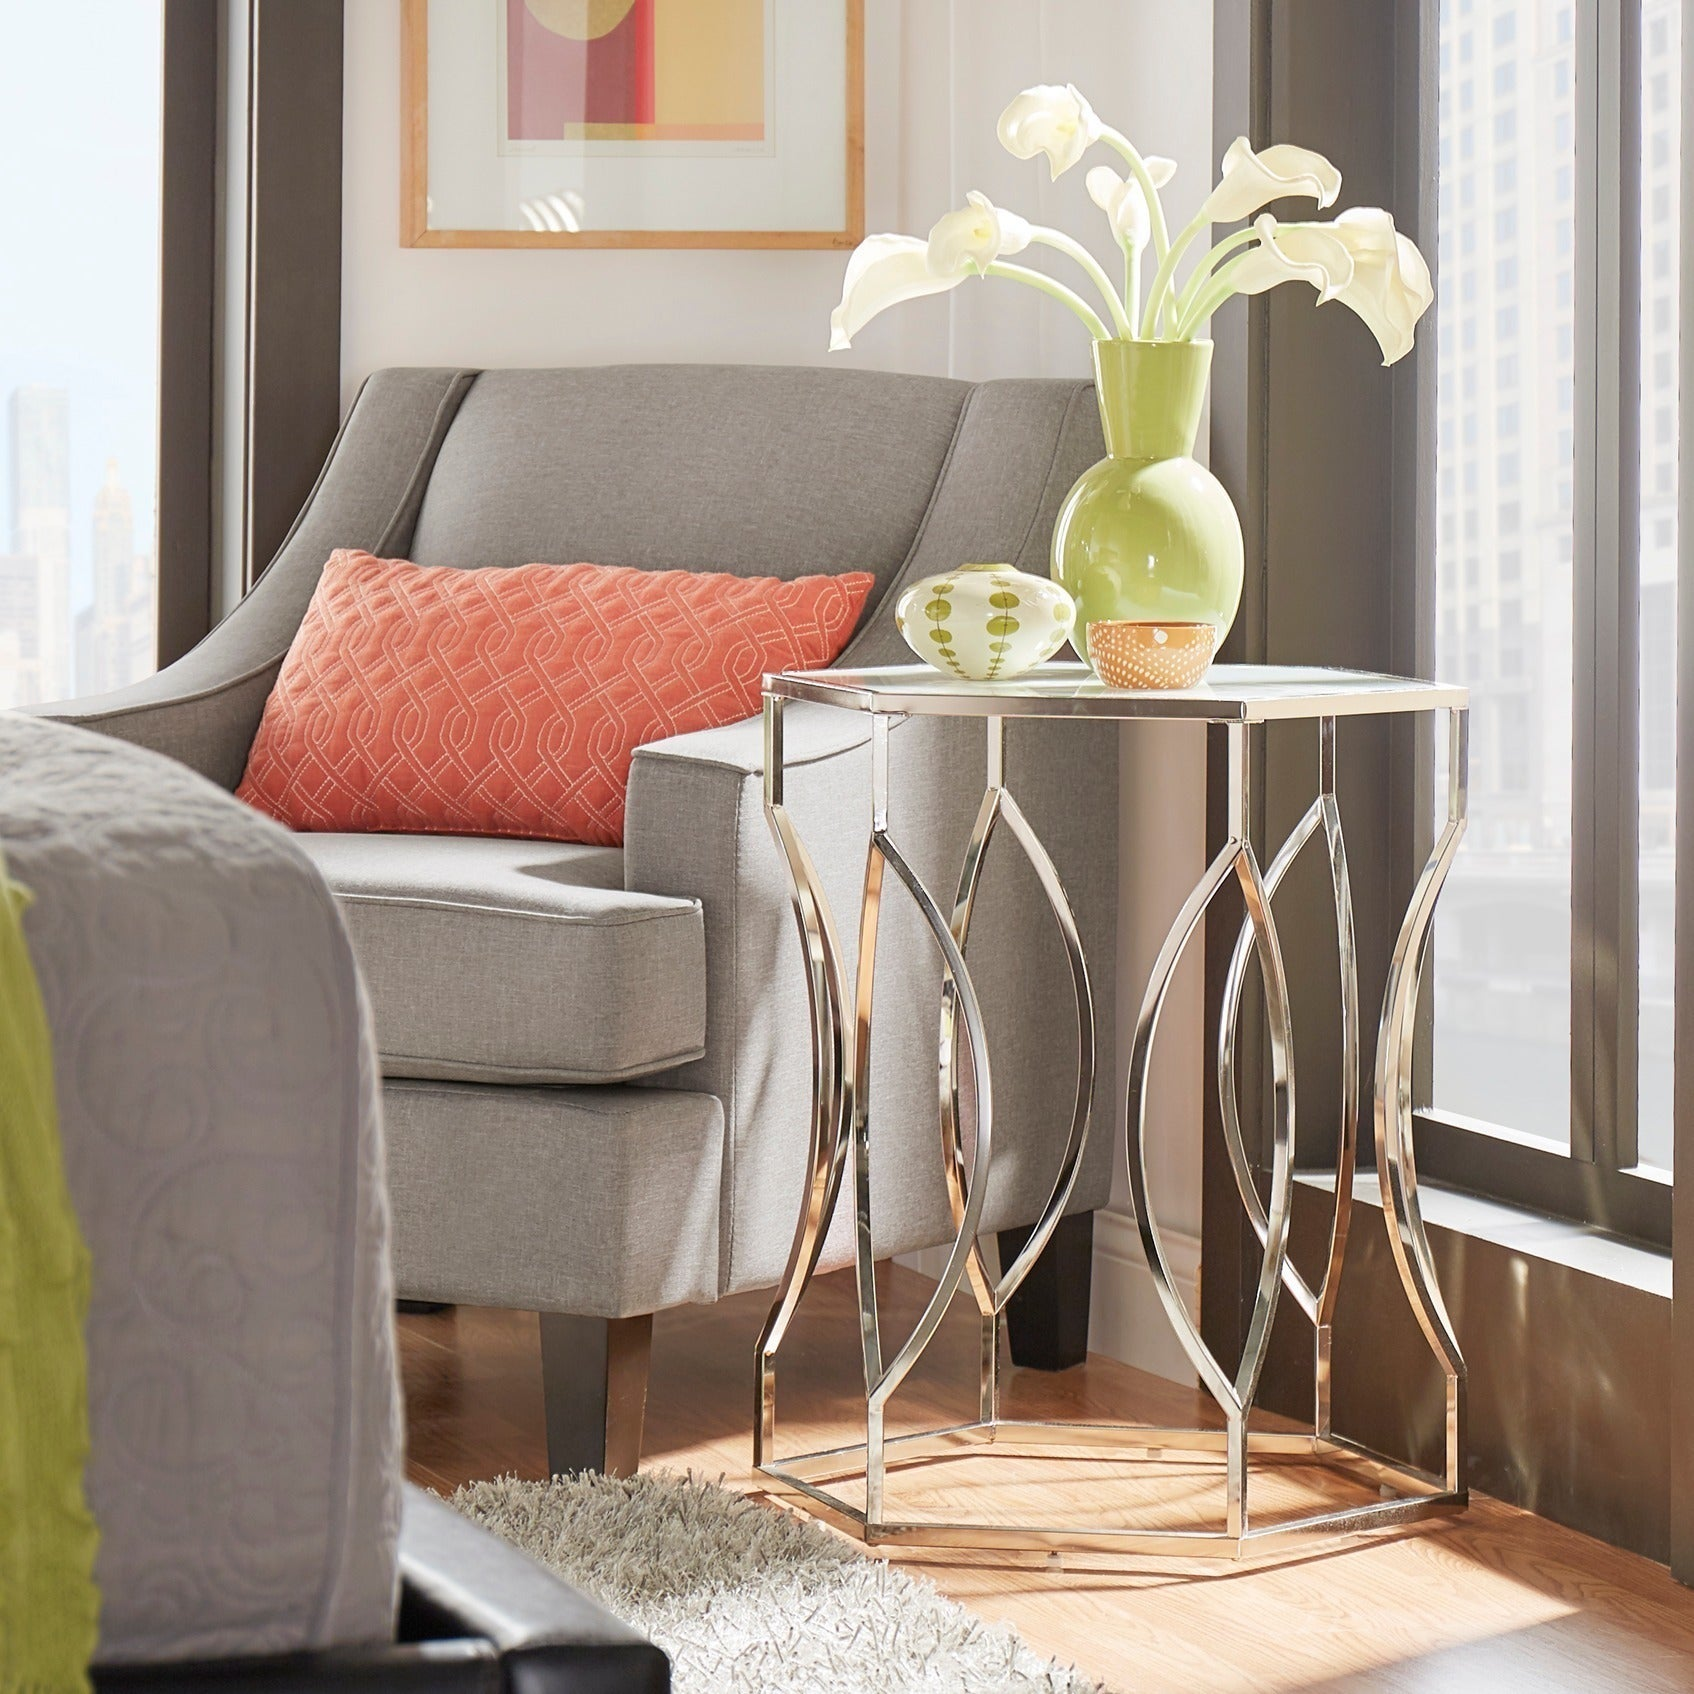 Davlin Hexagonal Metal Frosted-glass Accent End Table by iNSPIRE Q Bold -  Free Shipping Today - Overstock.com - 15484487